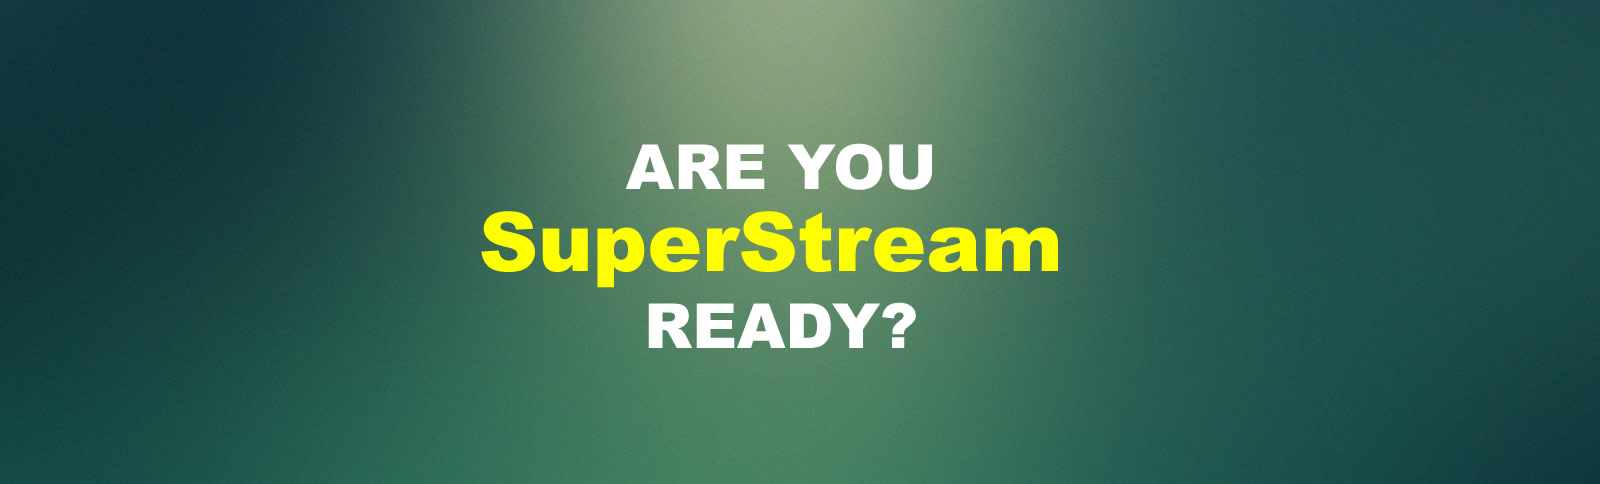 Are You Superstream Ready